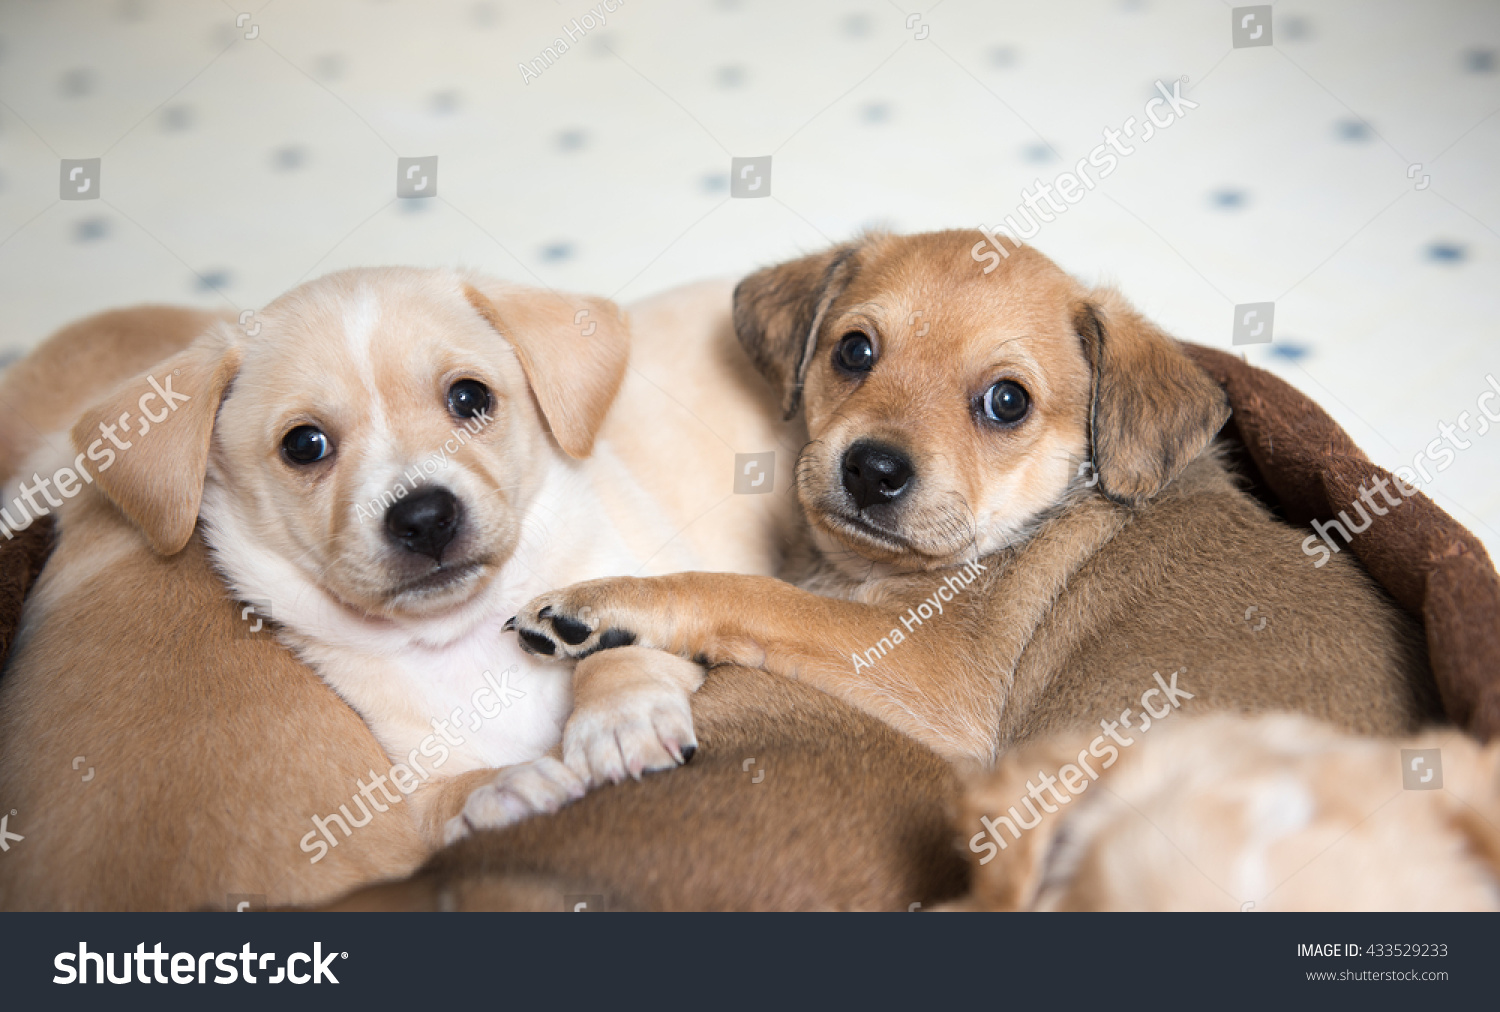 Two Terrier Mix Puppies Sleeping Dog Stock Photo - Puppies sleeping